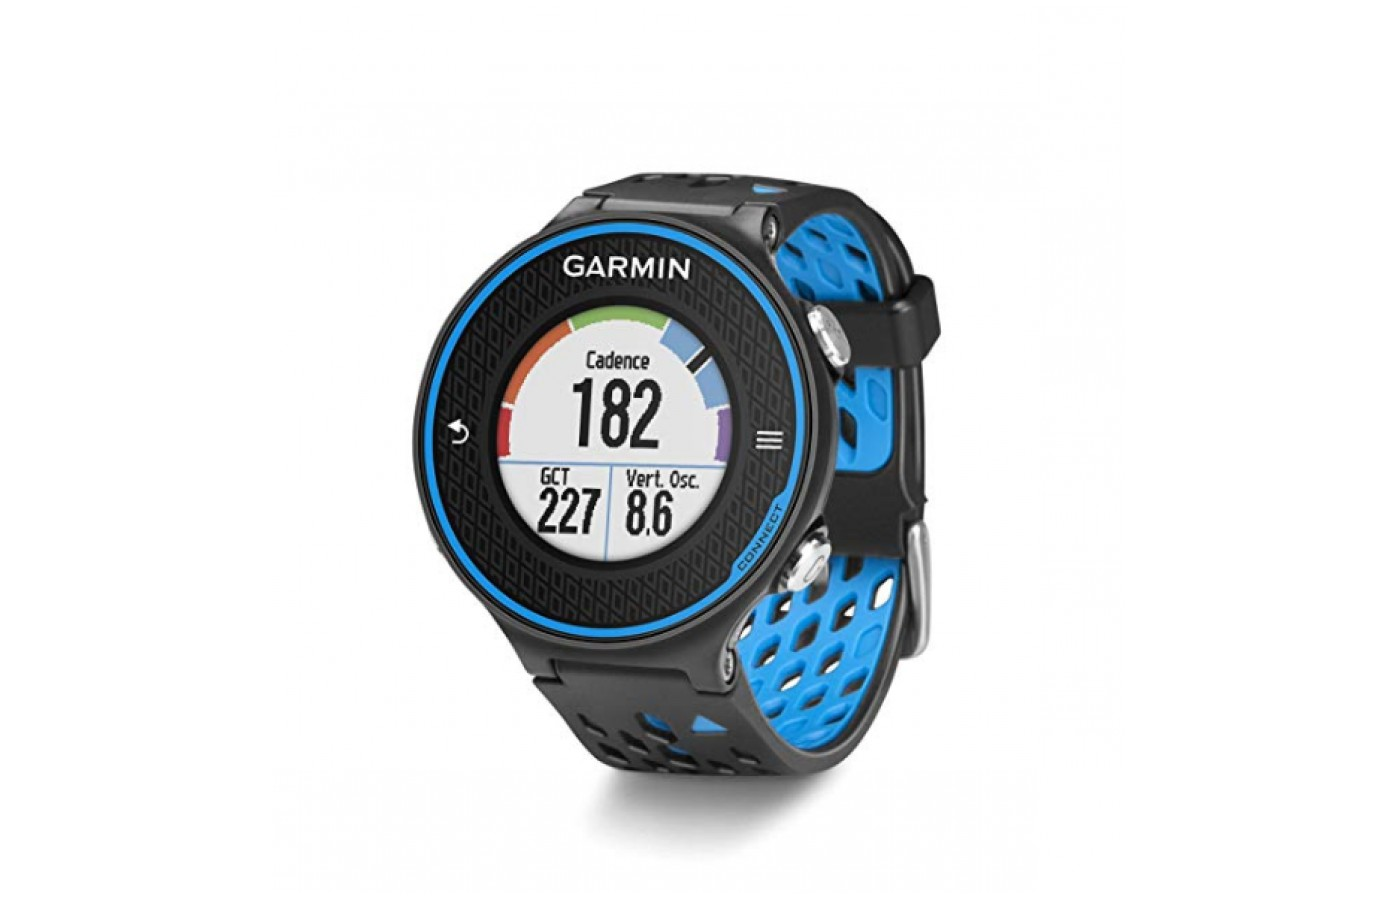 The Garmin can even trach your cadence with the right accessory bundle.